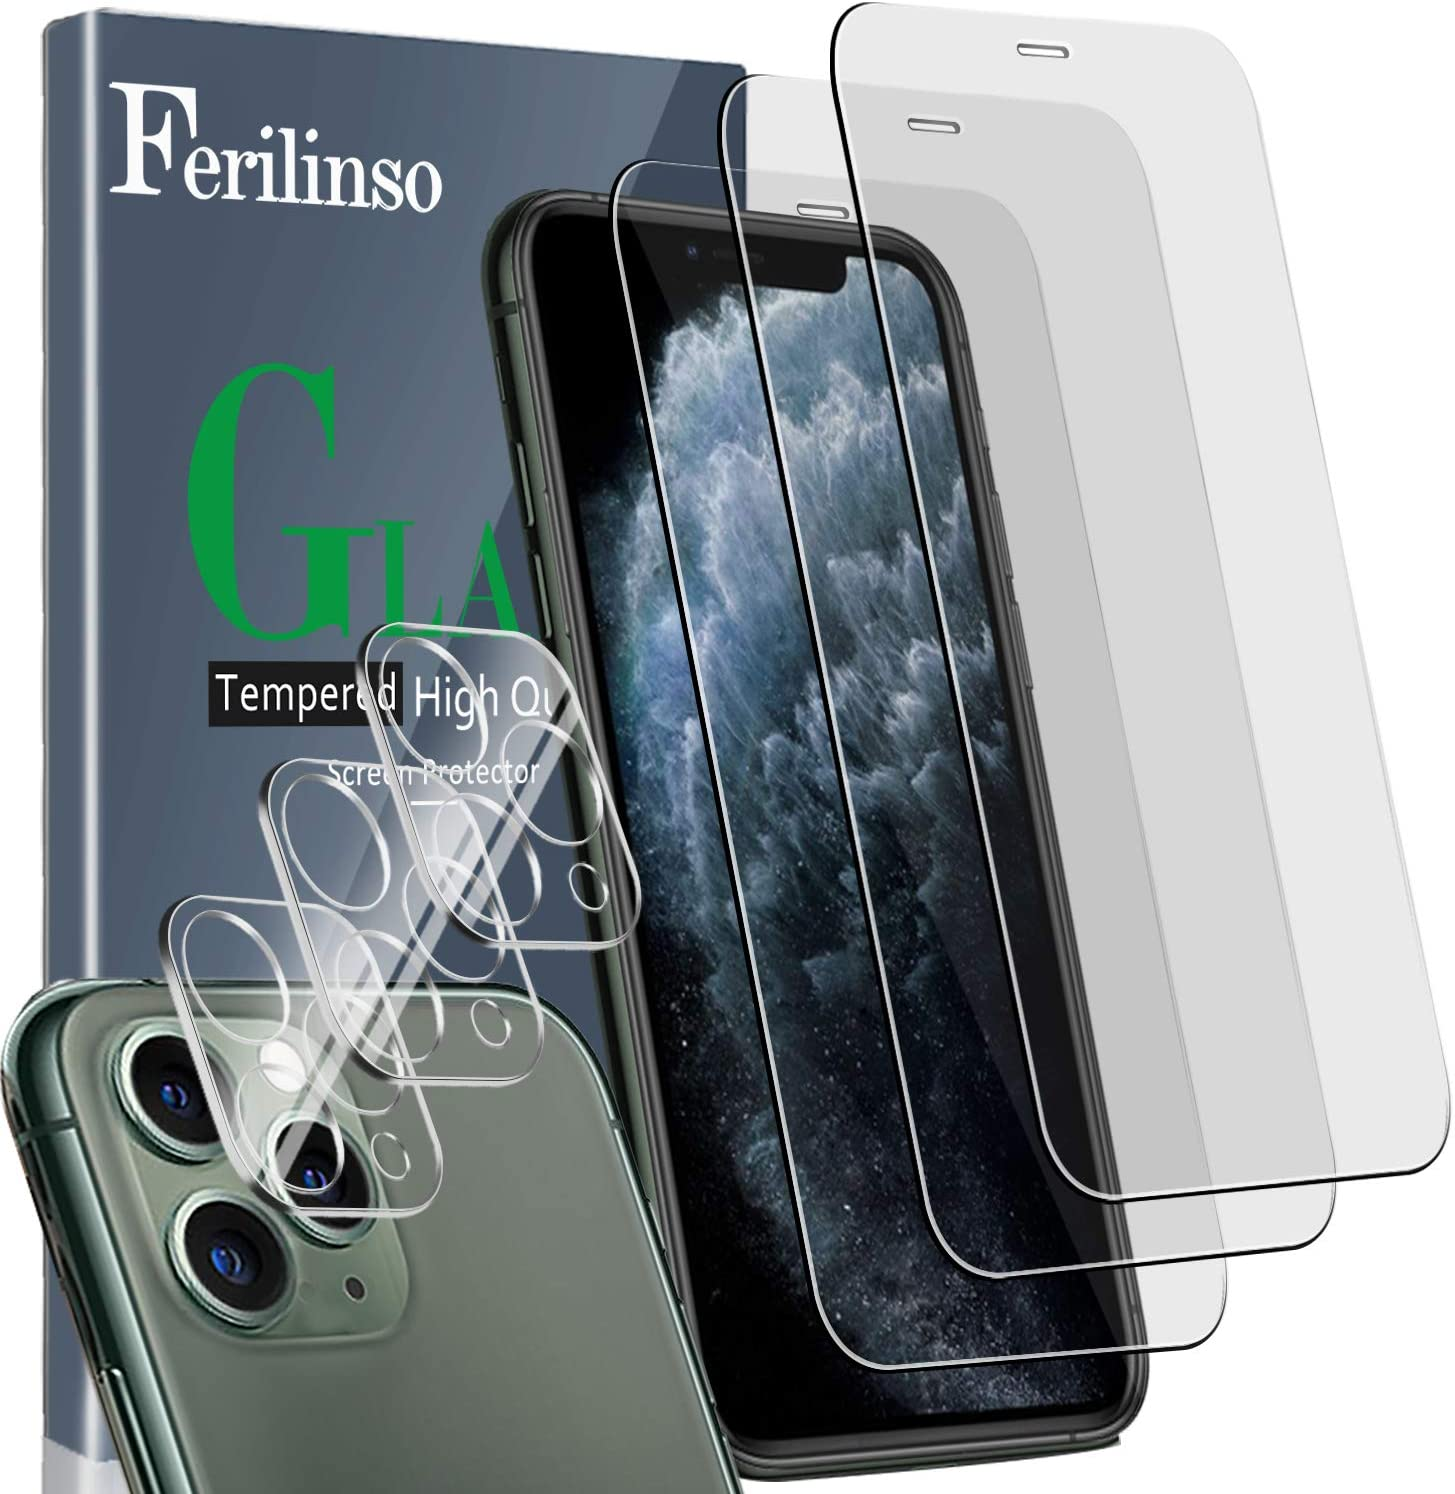 Ferilinso [6 Pack] 3 Pack Tempered Glass Screen Protector + 3 Pack Camera Lens Protector for iPhone 11 Pro Max (6.5''), HD Clarity 9H Glass Screen Protector